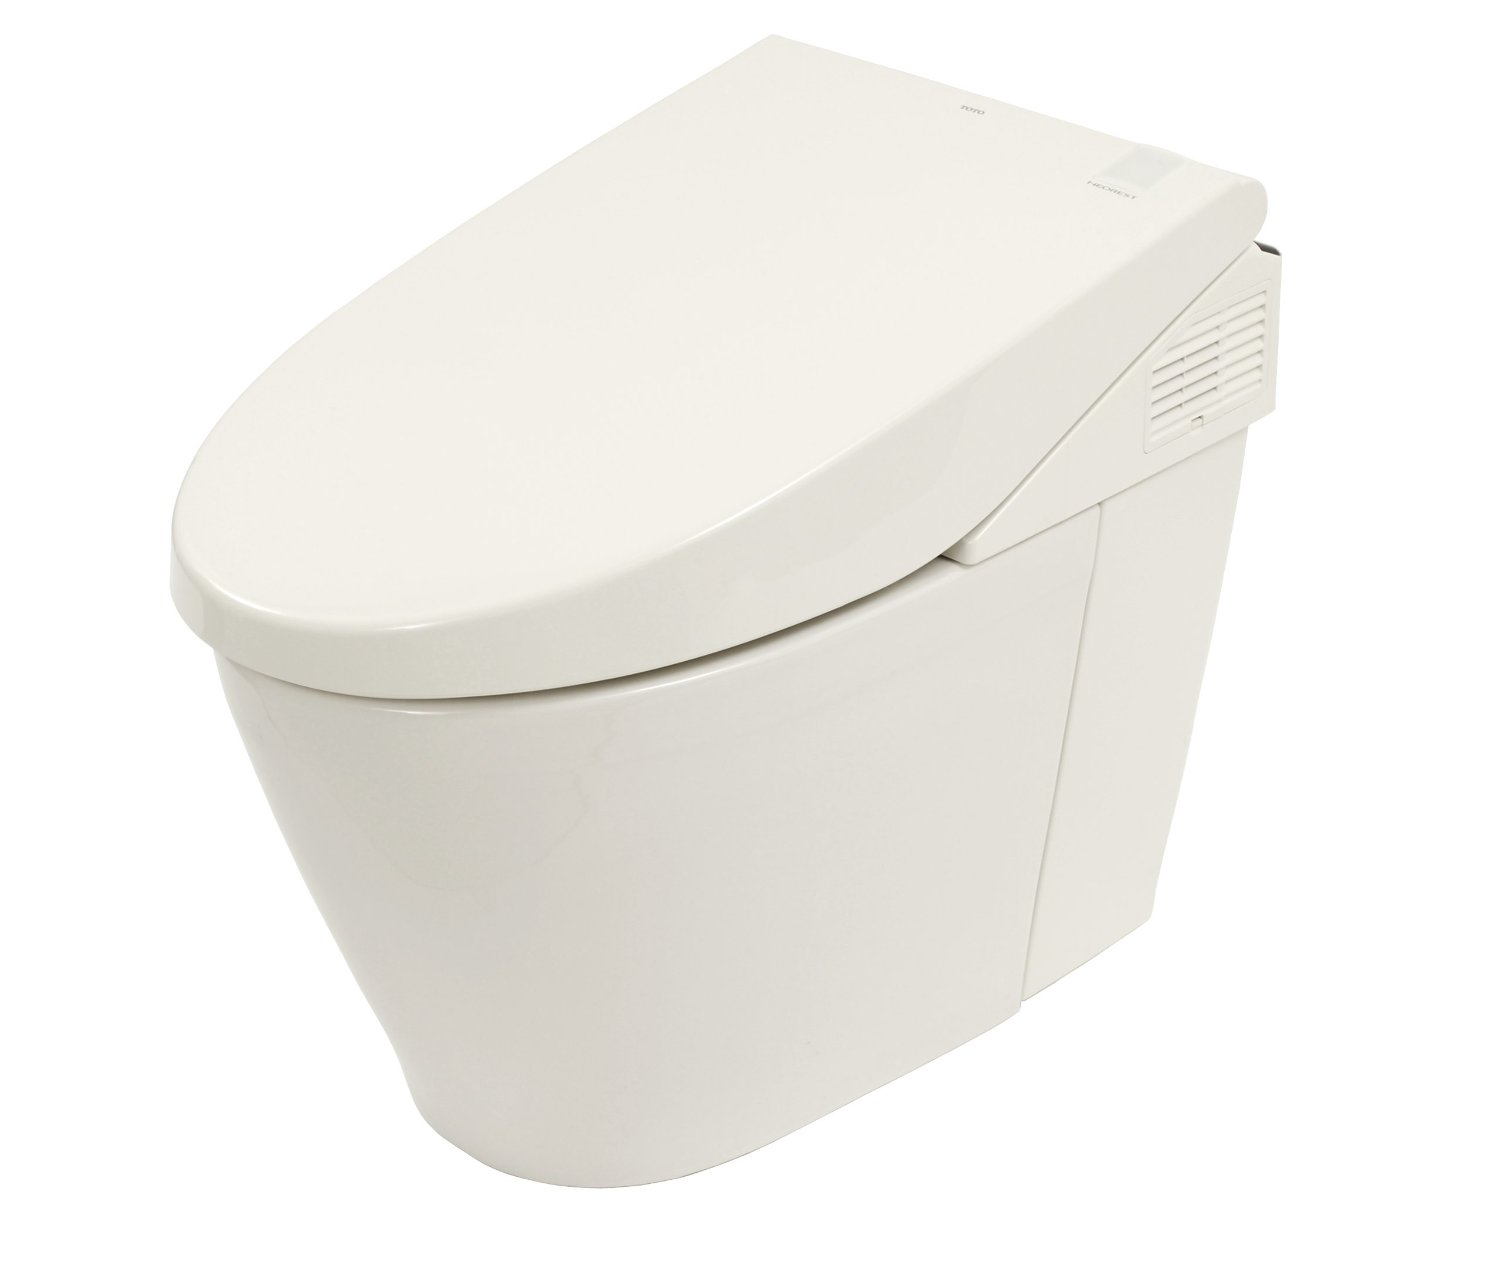 TOTO Neorest 550 Toilet Review | Toilet Review Guide